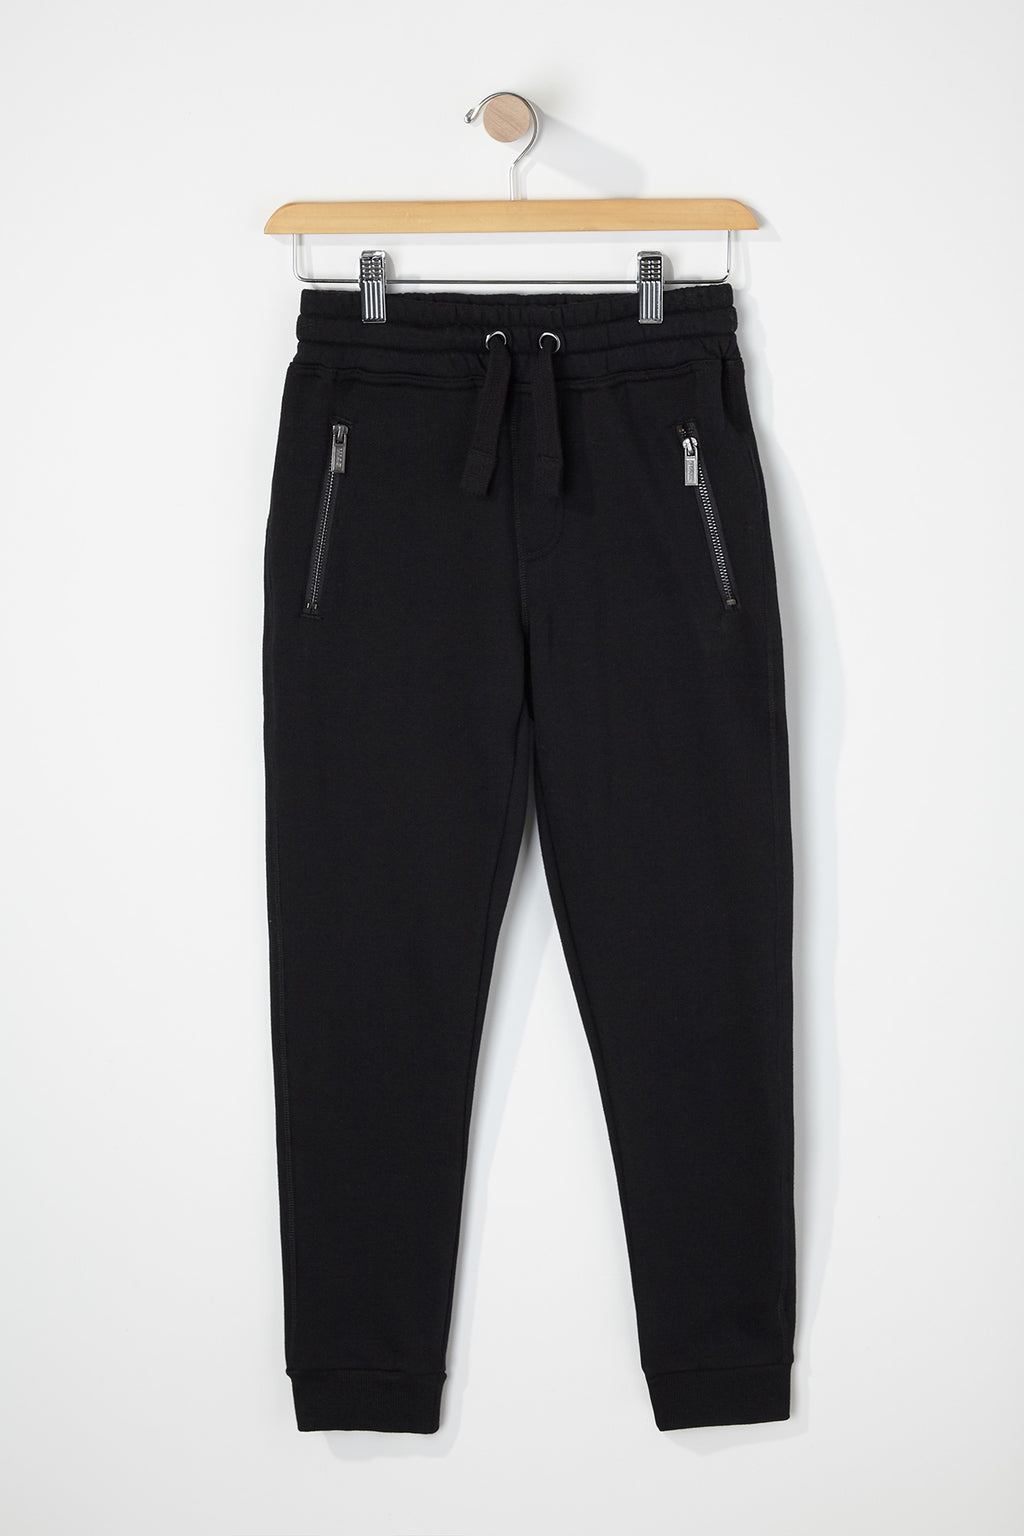 West49 Boys Solid Zip-Up Joggers